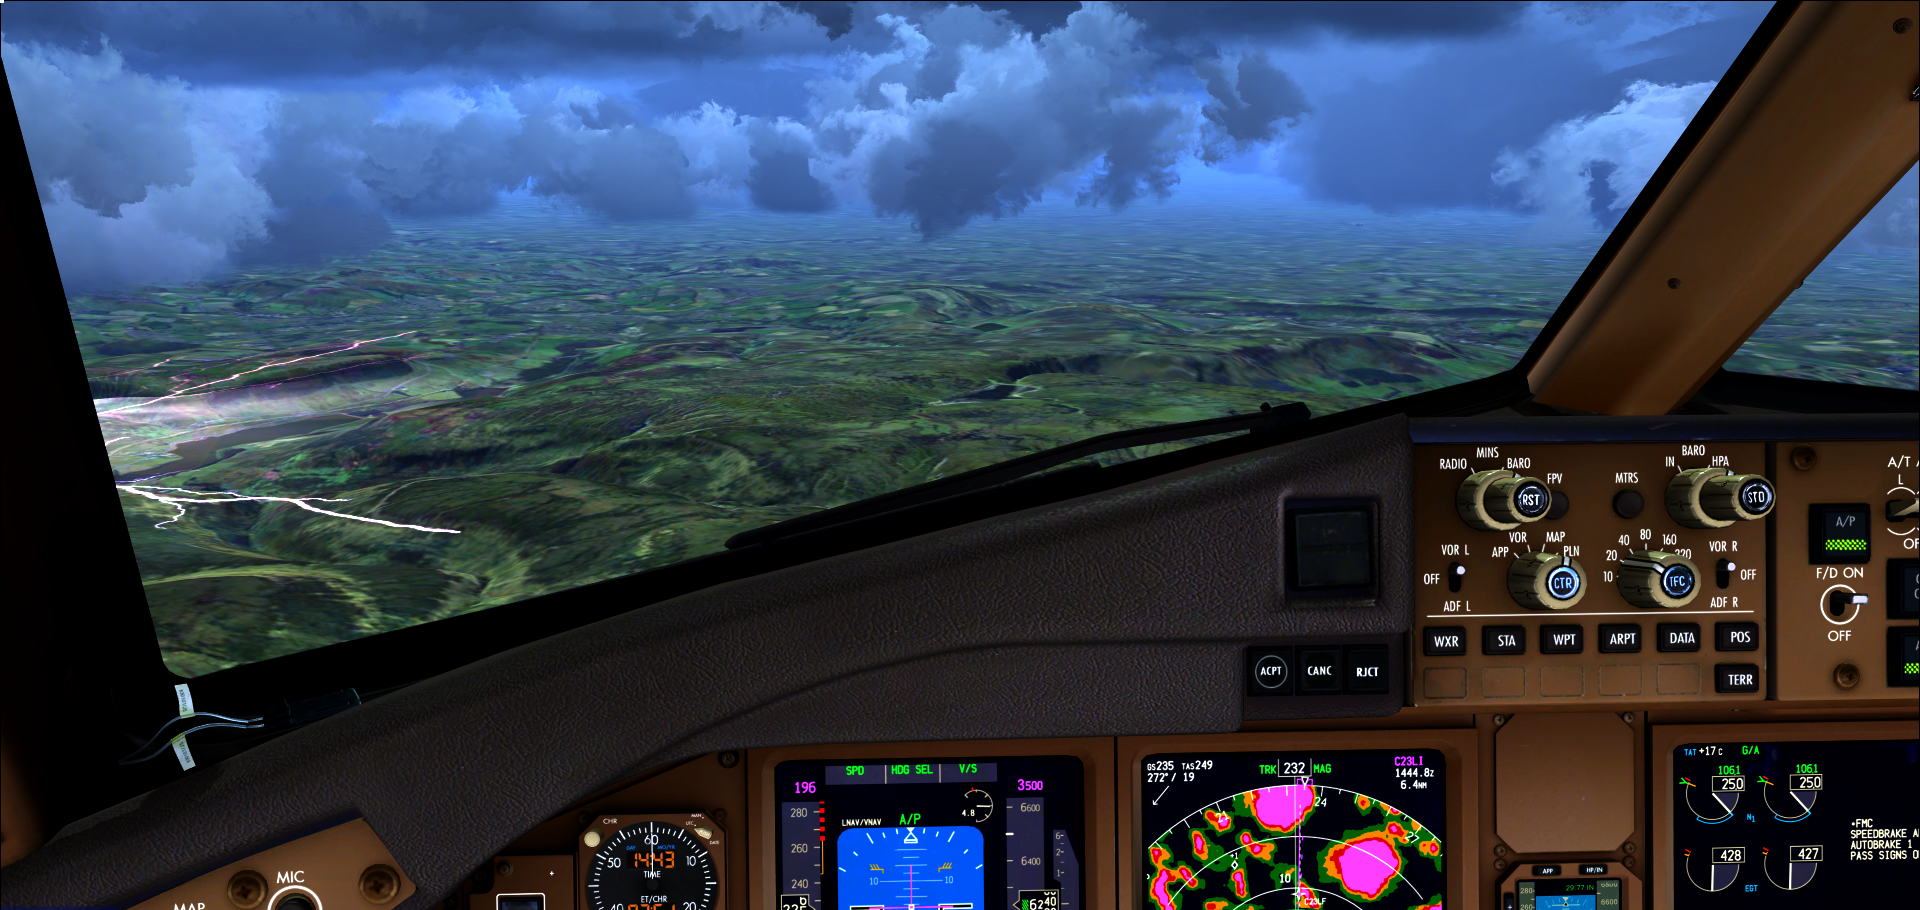 fsx%202014-08-06%2014-34-10-19.png